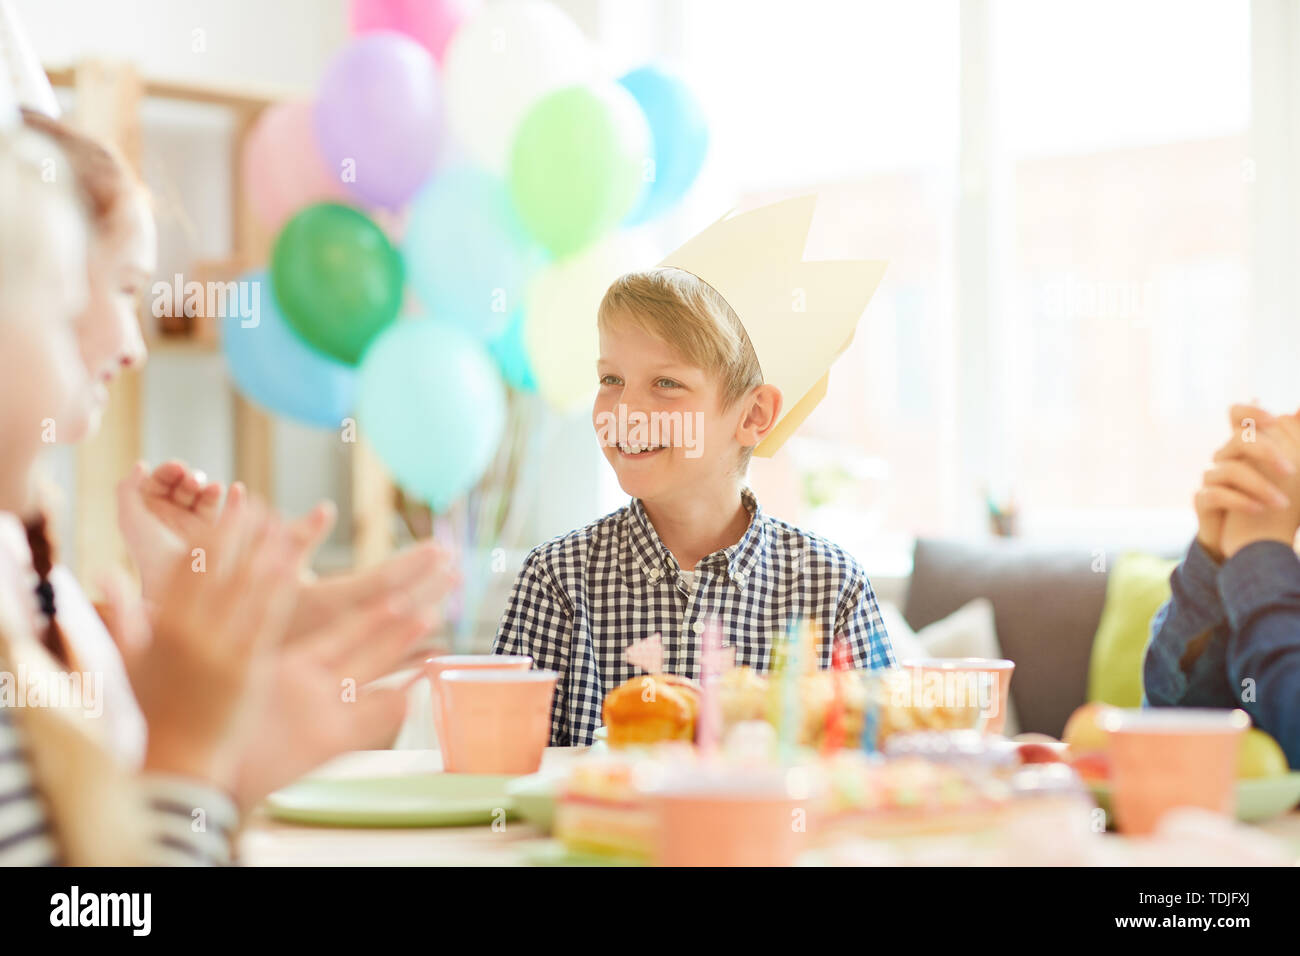 Portrait of smiling boy wearing crown sitting at table while celebrating Birthday with friends, copy space Stock Photo